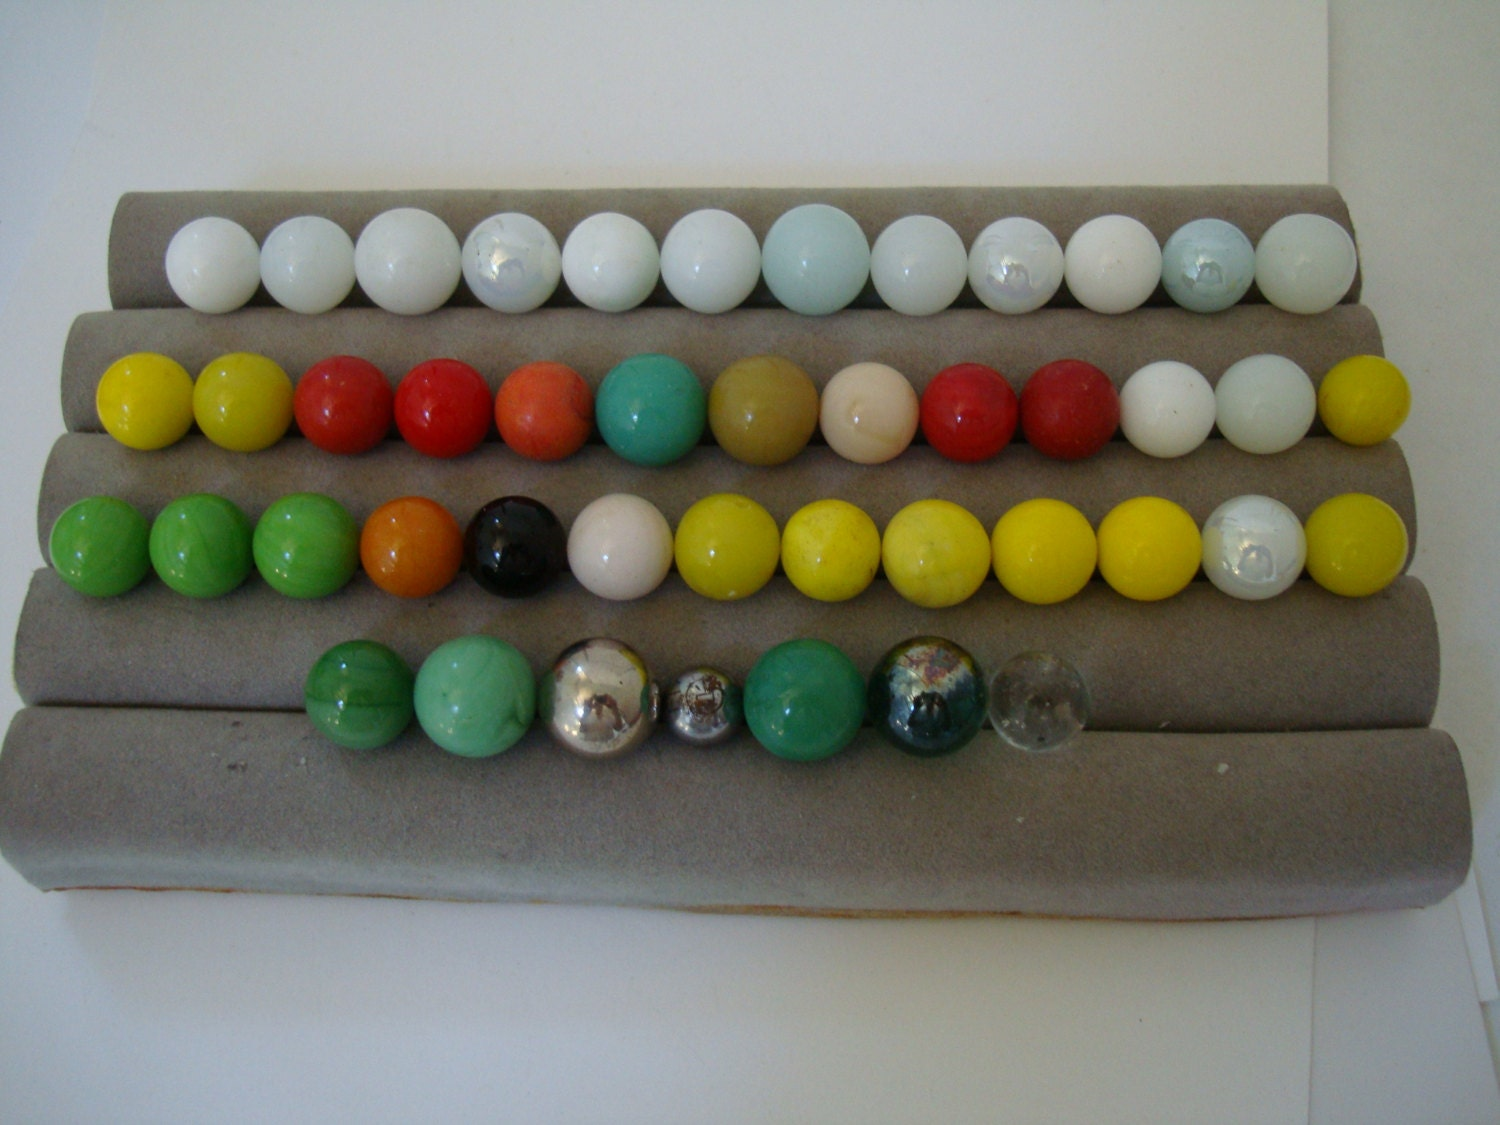 Solid Color Marbles : Glass marbles are mostly solid color all machine